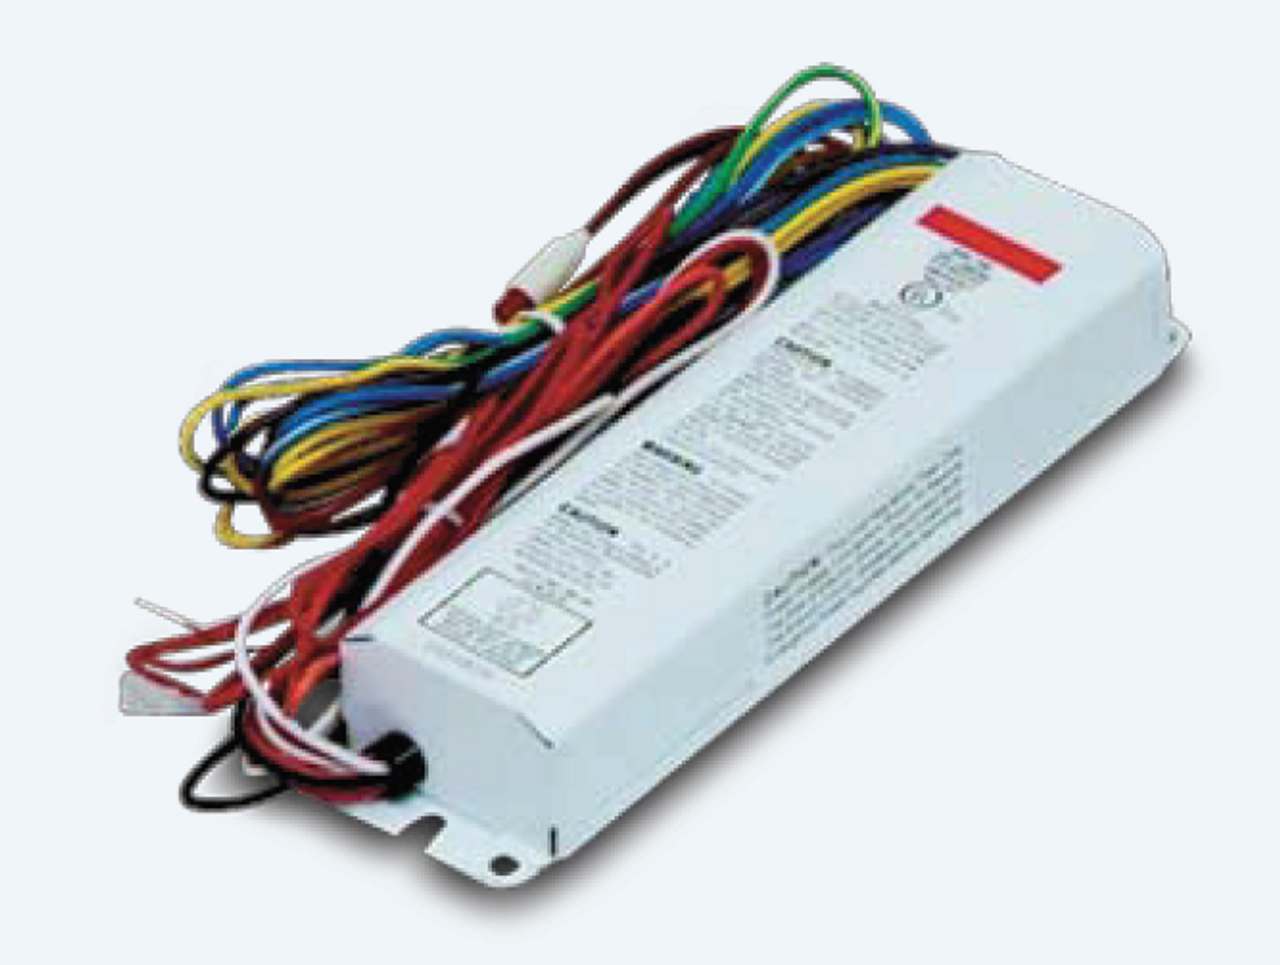 BAL700 Emergency Lighting Ballast | 600-700 Lumen on emergency exit cobra controls wire diagram, refrigerator parts diagram, emergency ballast circuit, electronic ballast circuit diagram, emergency ballast troubleshooting, emergency light switch panel, emergency battery ballast wiring, fluorescent fixtures t5 circuit diagram, 0-10v dimming led diagram, emergency standby ballast, light circuit diagram, backup battery ballast fluorescent diagram, emergency ballast installation, cfl ballast circuit diagram,